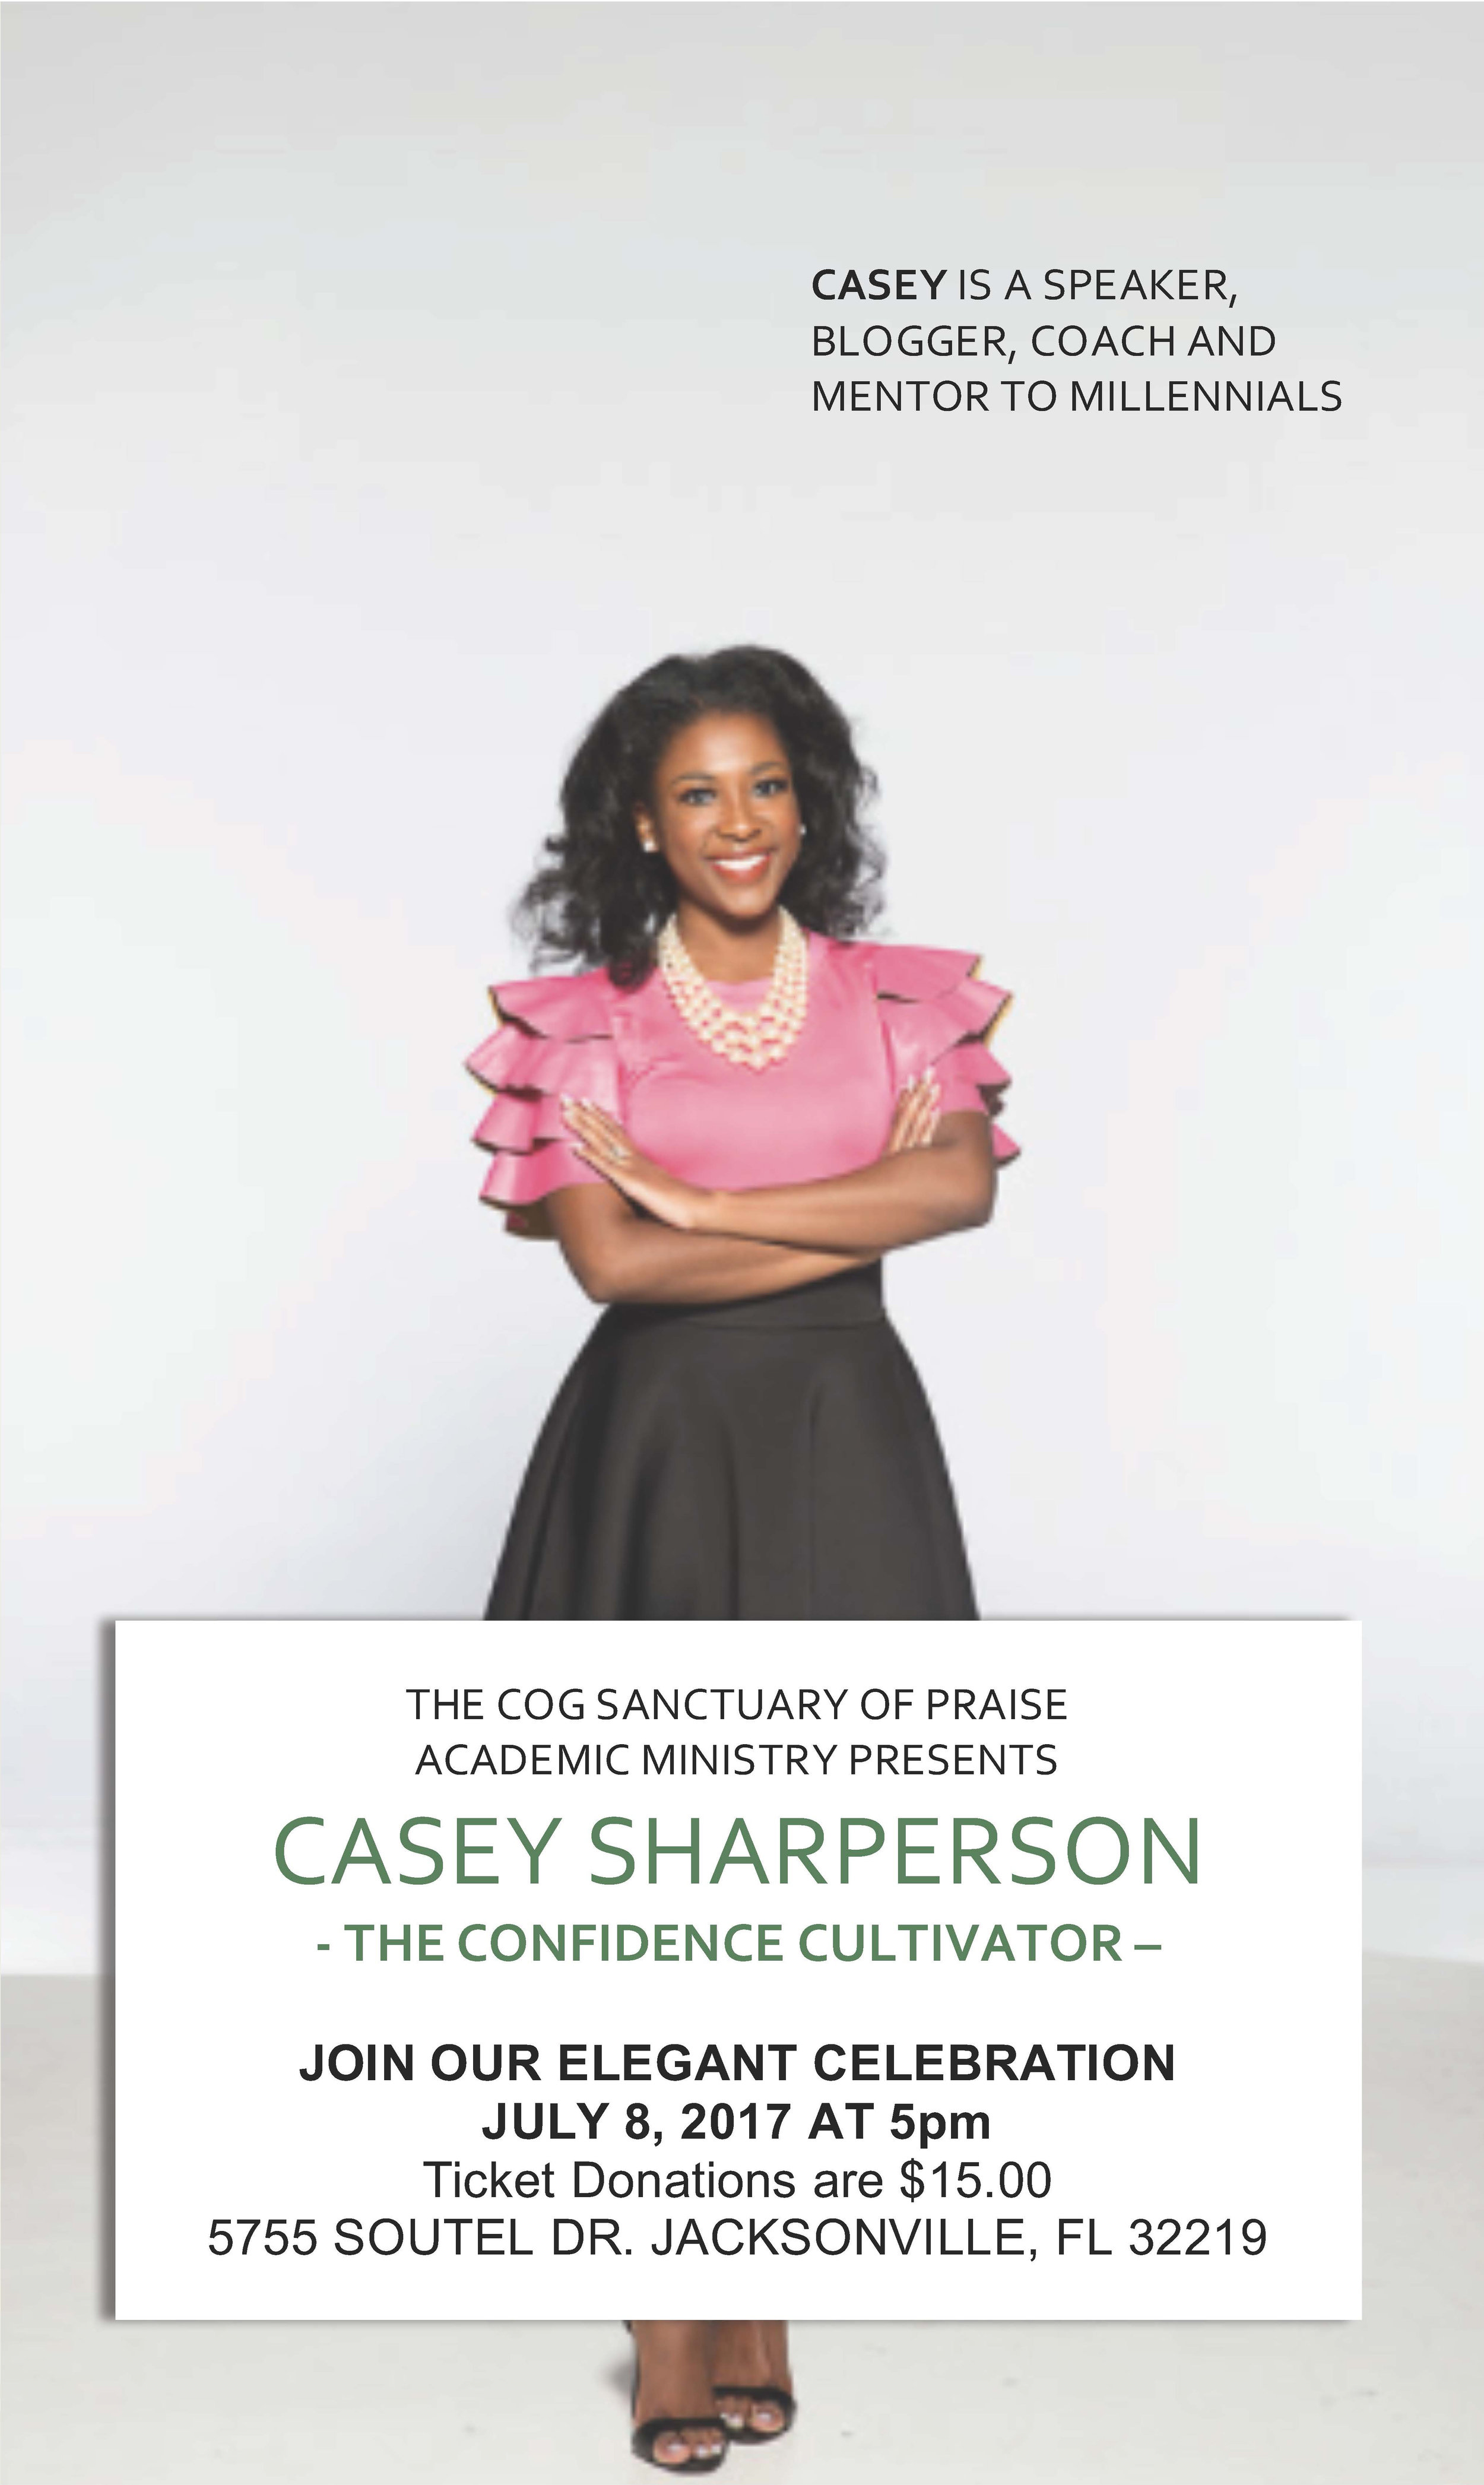 Speaking Engagement - If you're in the Jacksonville area, I would love to see you!